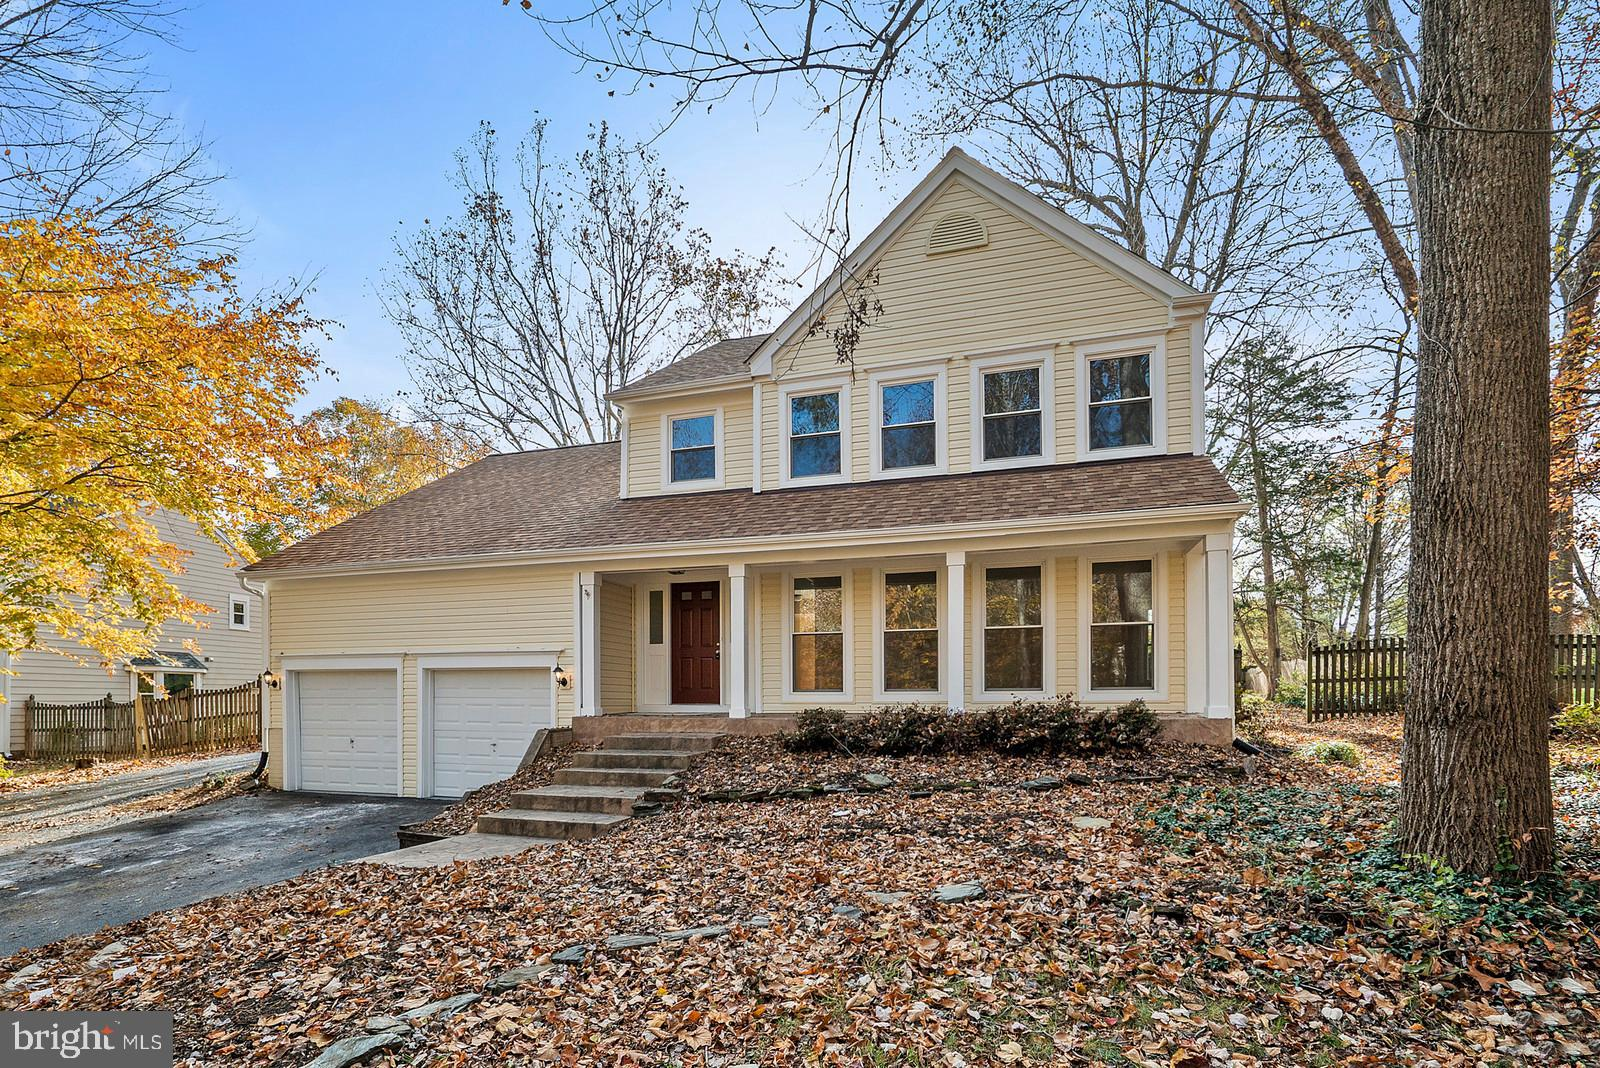 Lovely renovated 4BR 2.5 BA Colonial ready for new owners! Features include: Wood floors on main lev